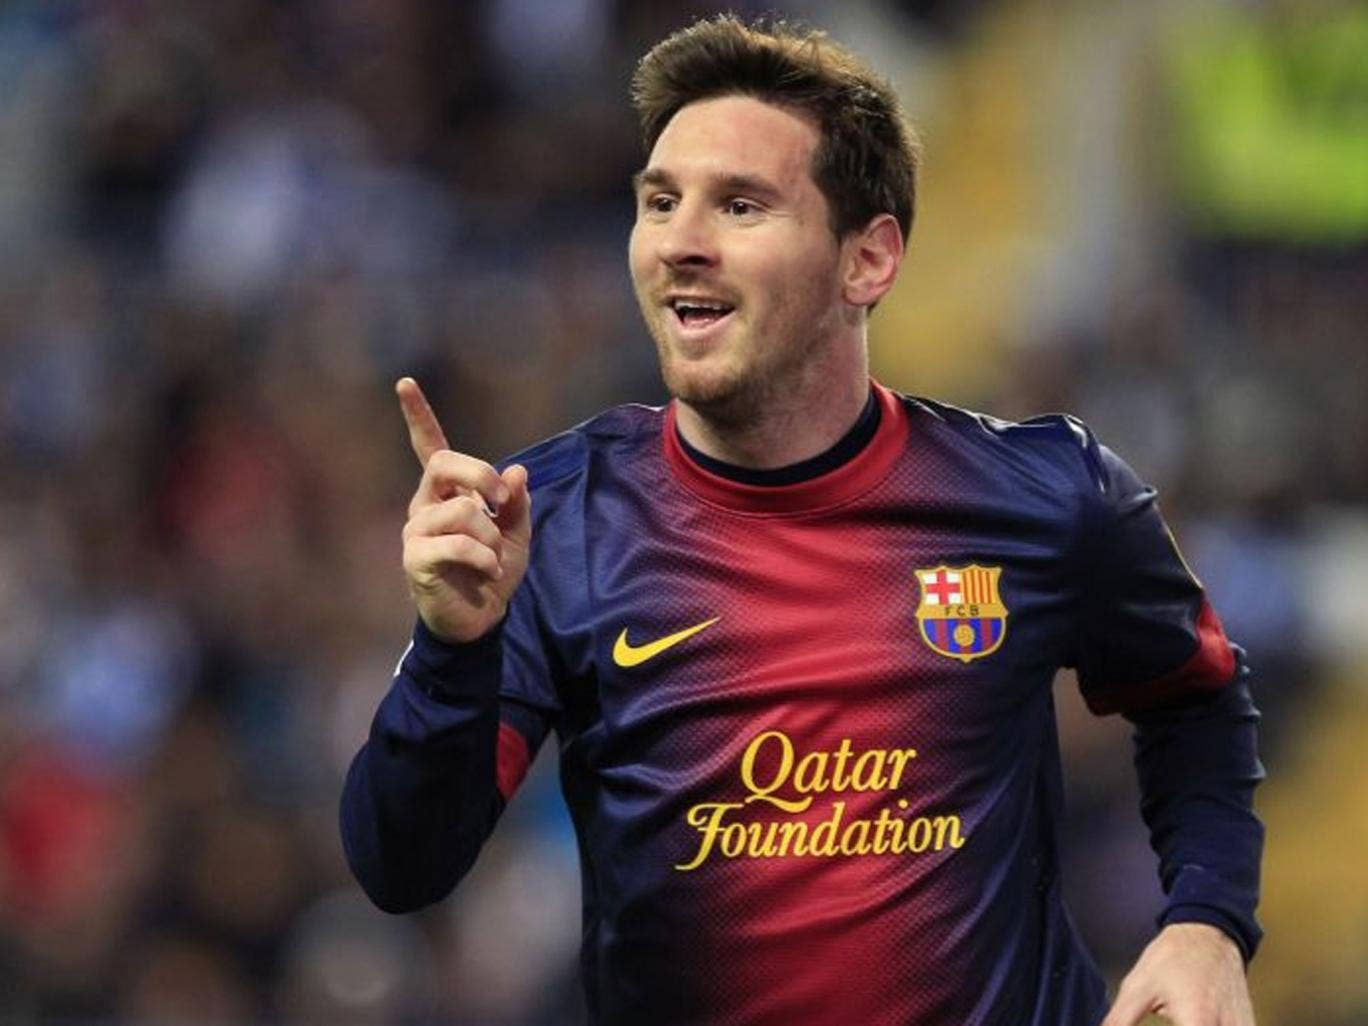 Messi is on target to break his own Spanish league record of 50 goals from last season